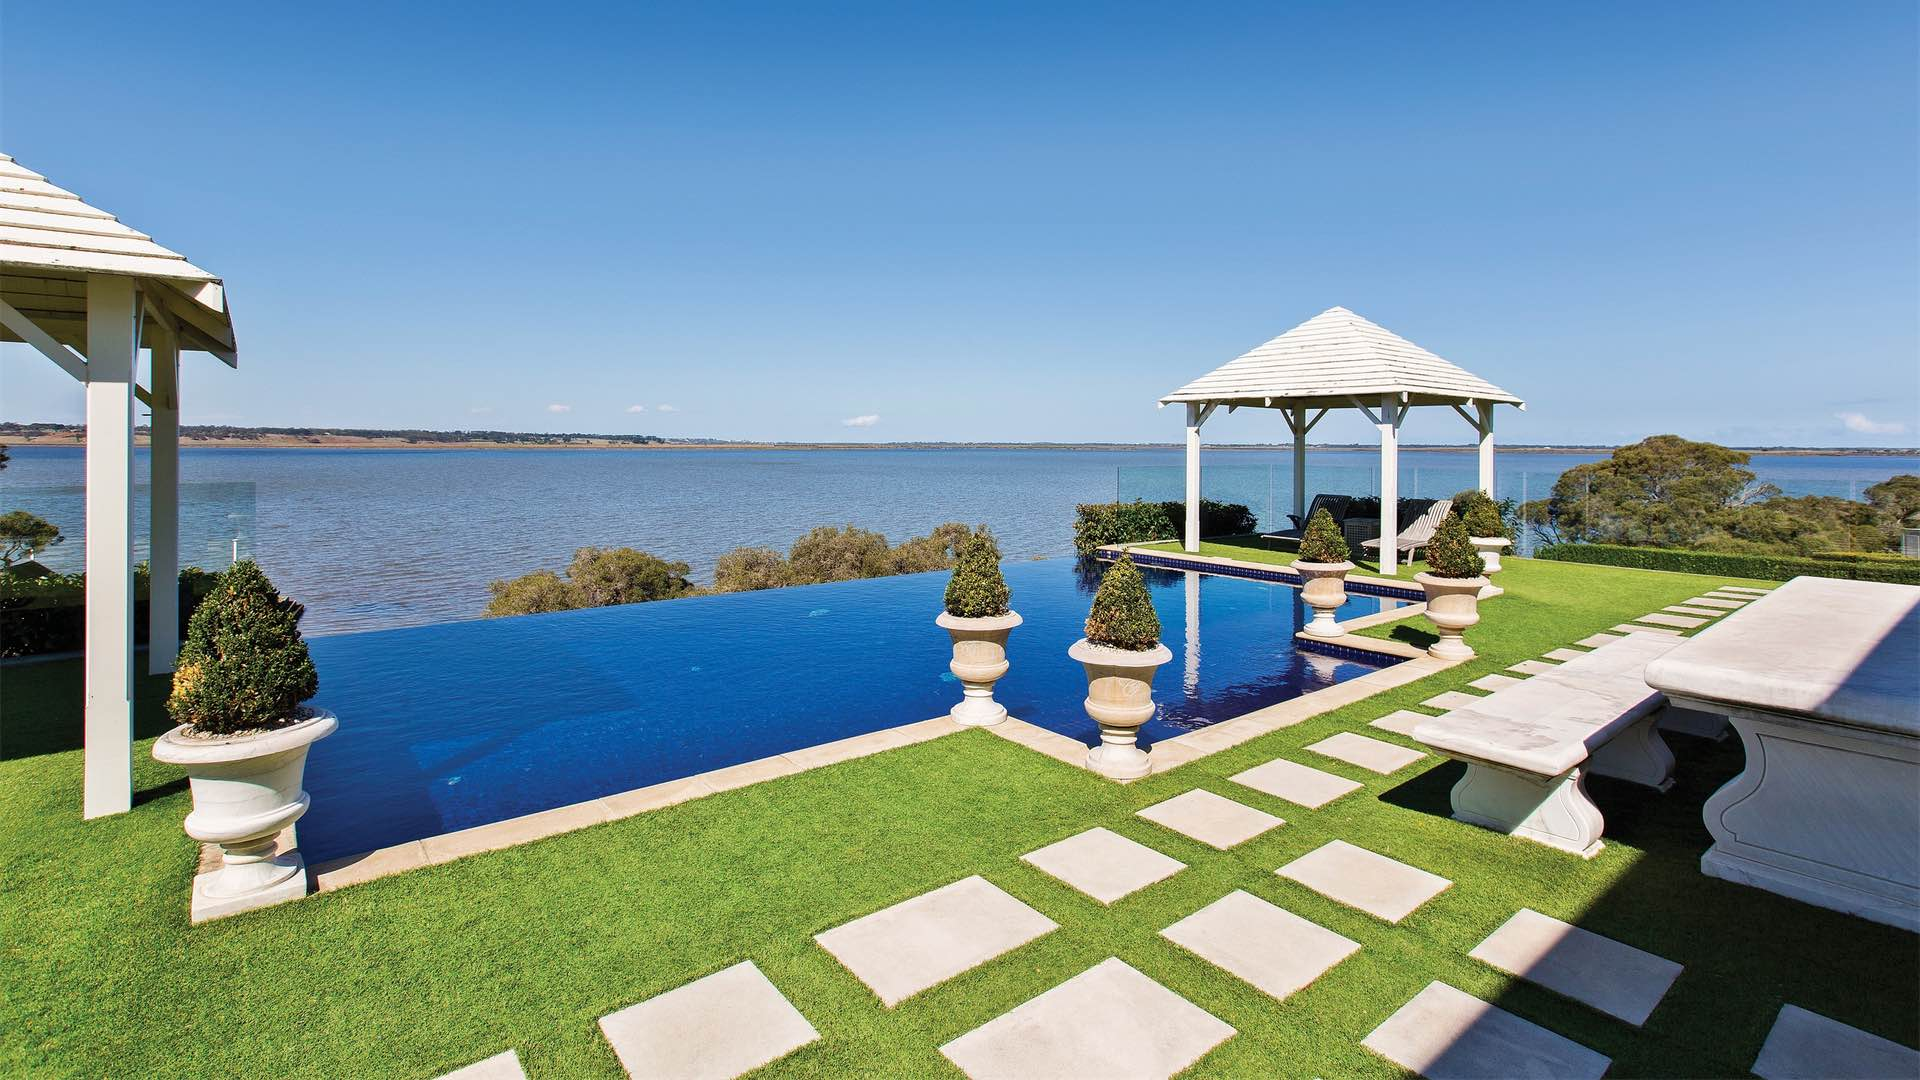 Campbell Point House Is the Bellarine Peninsula's Incredible New Luxury Hotel